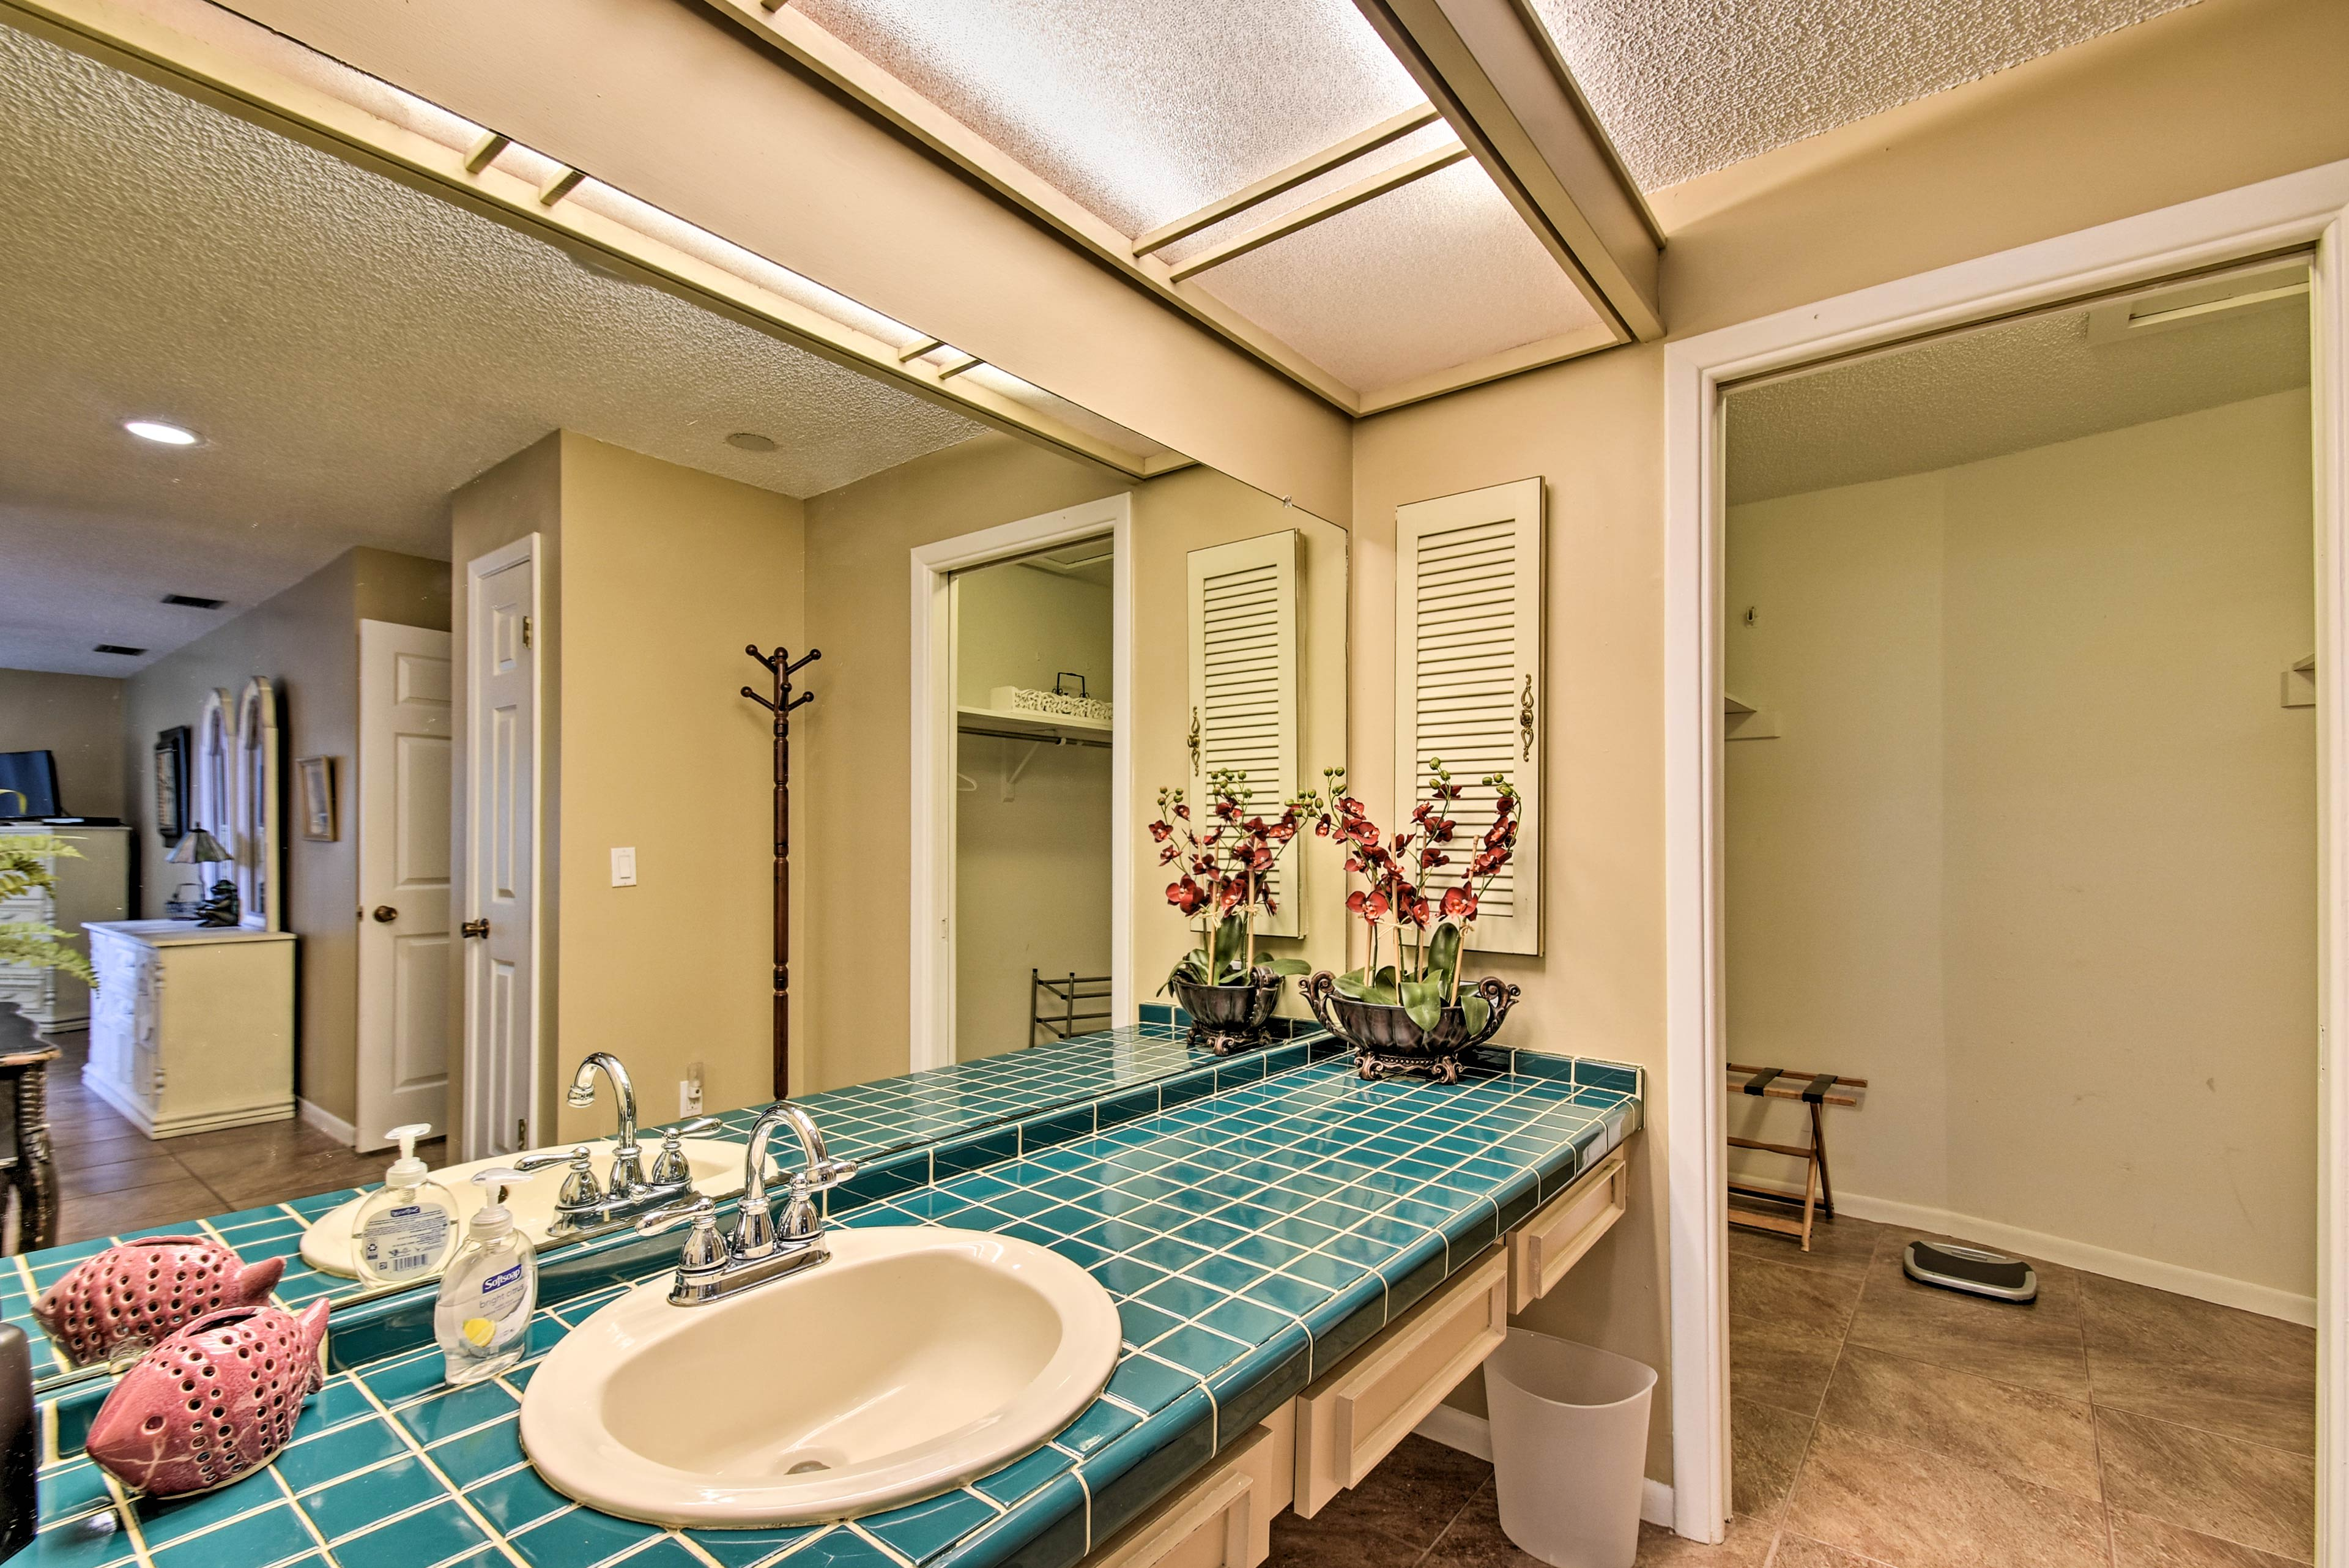 The master en-suite includes a large single vanity and a shower/tub combo.